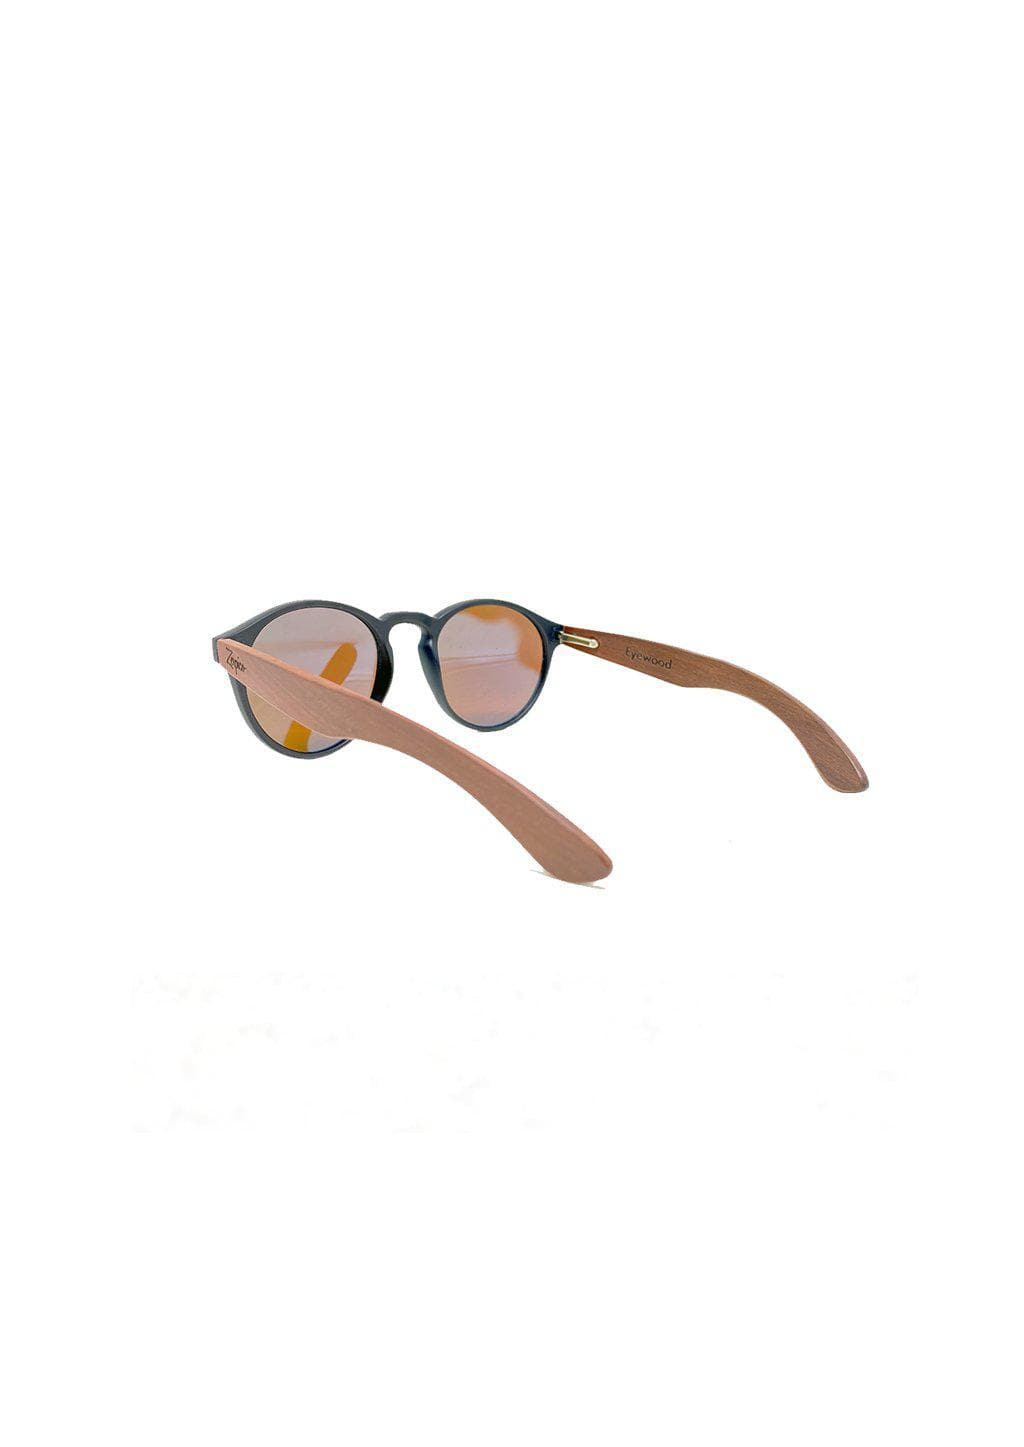 Eyewood Cubs - Lilo - Wooden sunglasses for kids and toddlers. From the back.